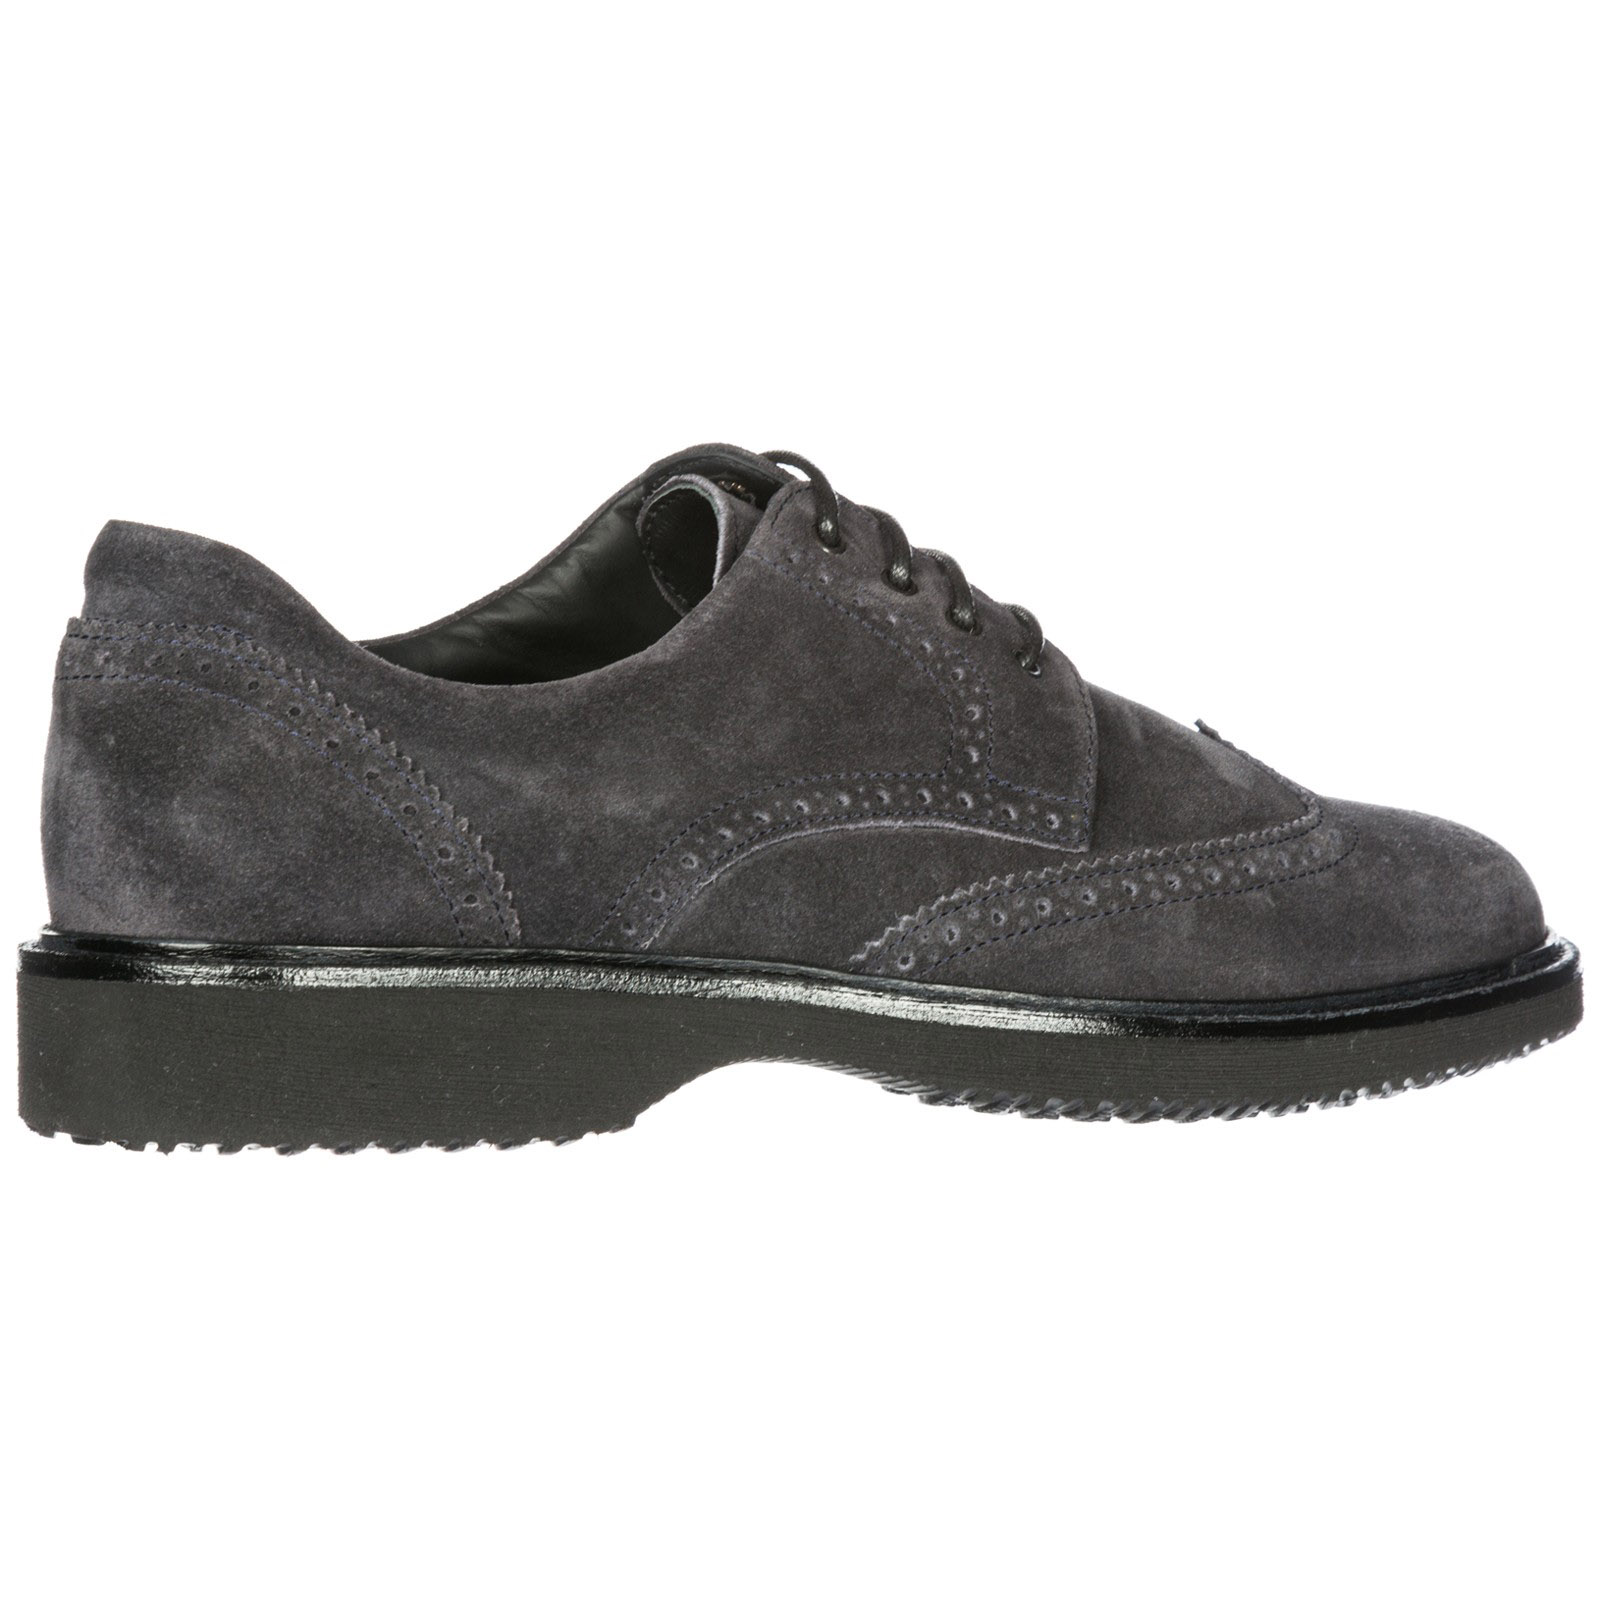 Men's classic suede lace up laced formal shoes derby h217